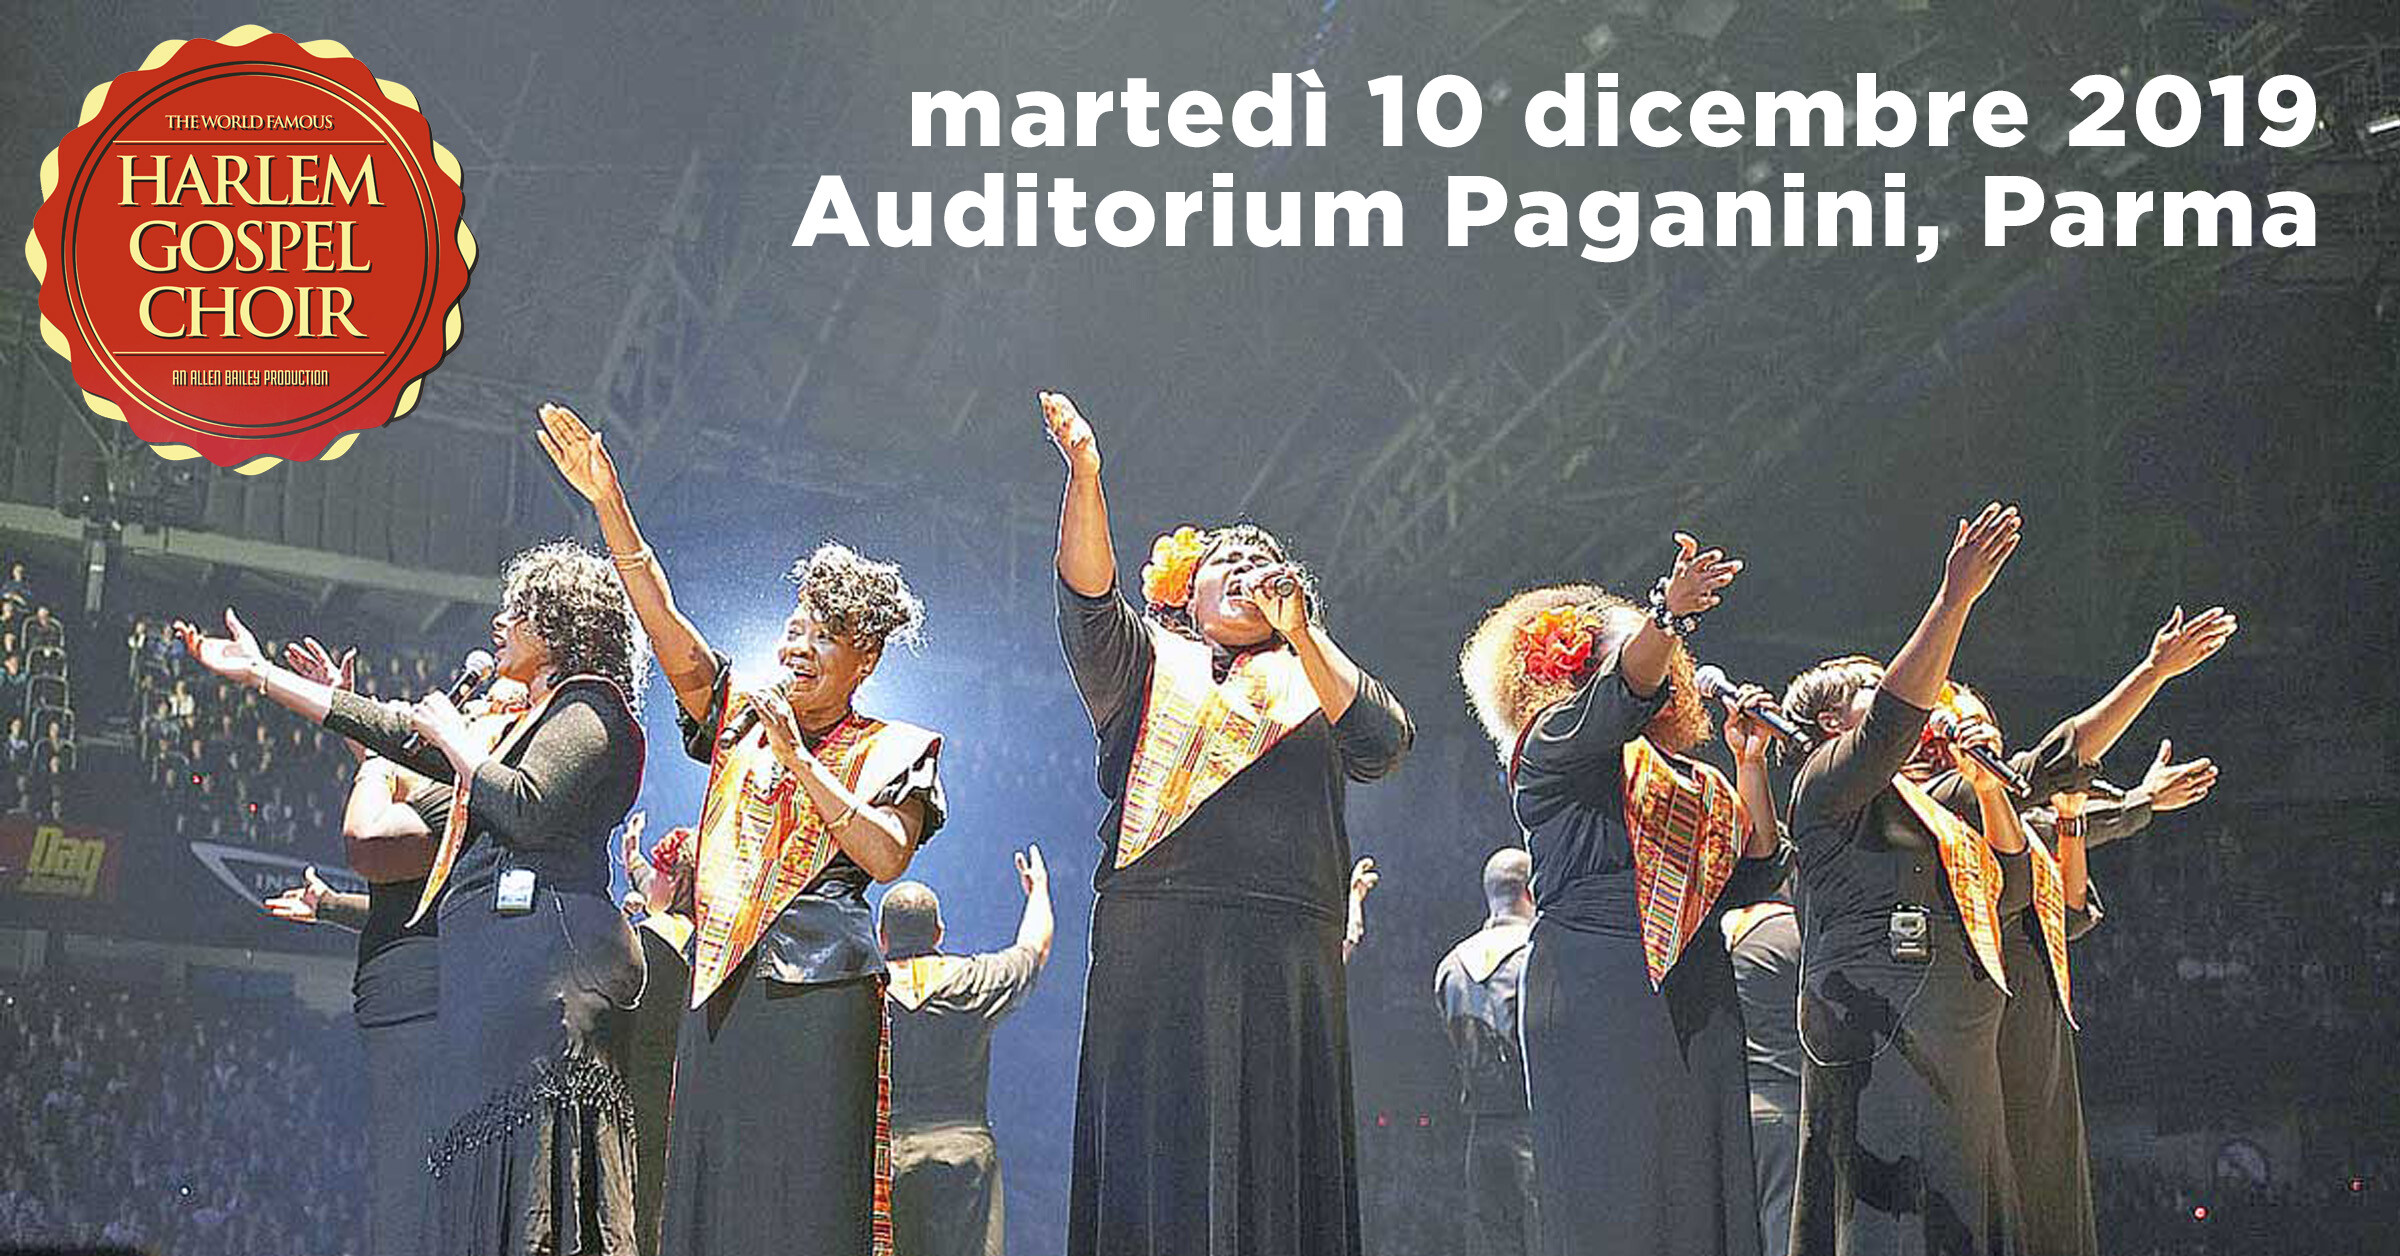 IL PIU' FAMOSO CORO GOSPEL D'AMERICA HARLEM GOSPEL CHOIR  with a special tribute to Prince  all'Auditorium Paganini